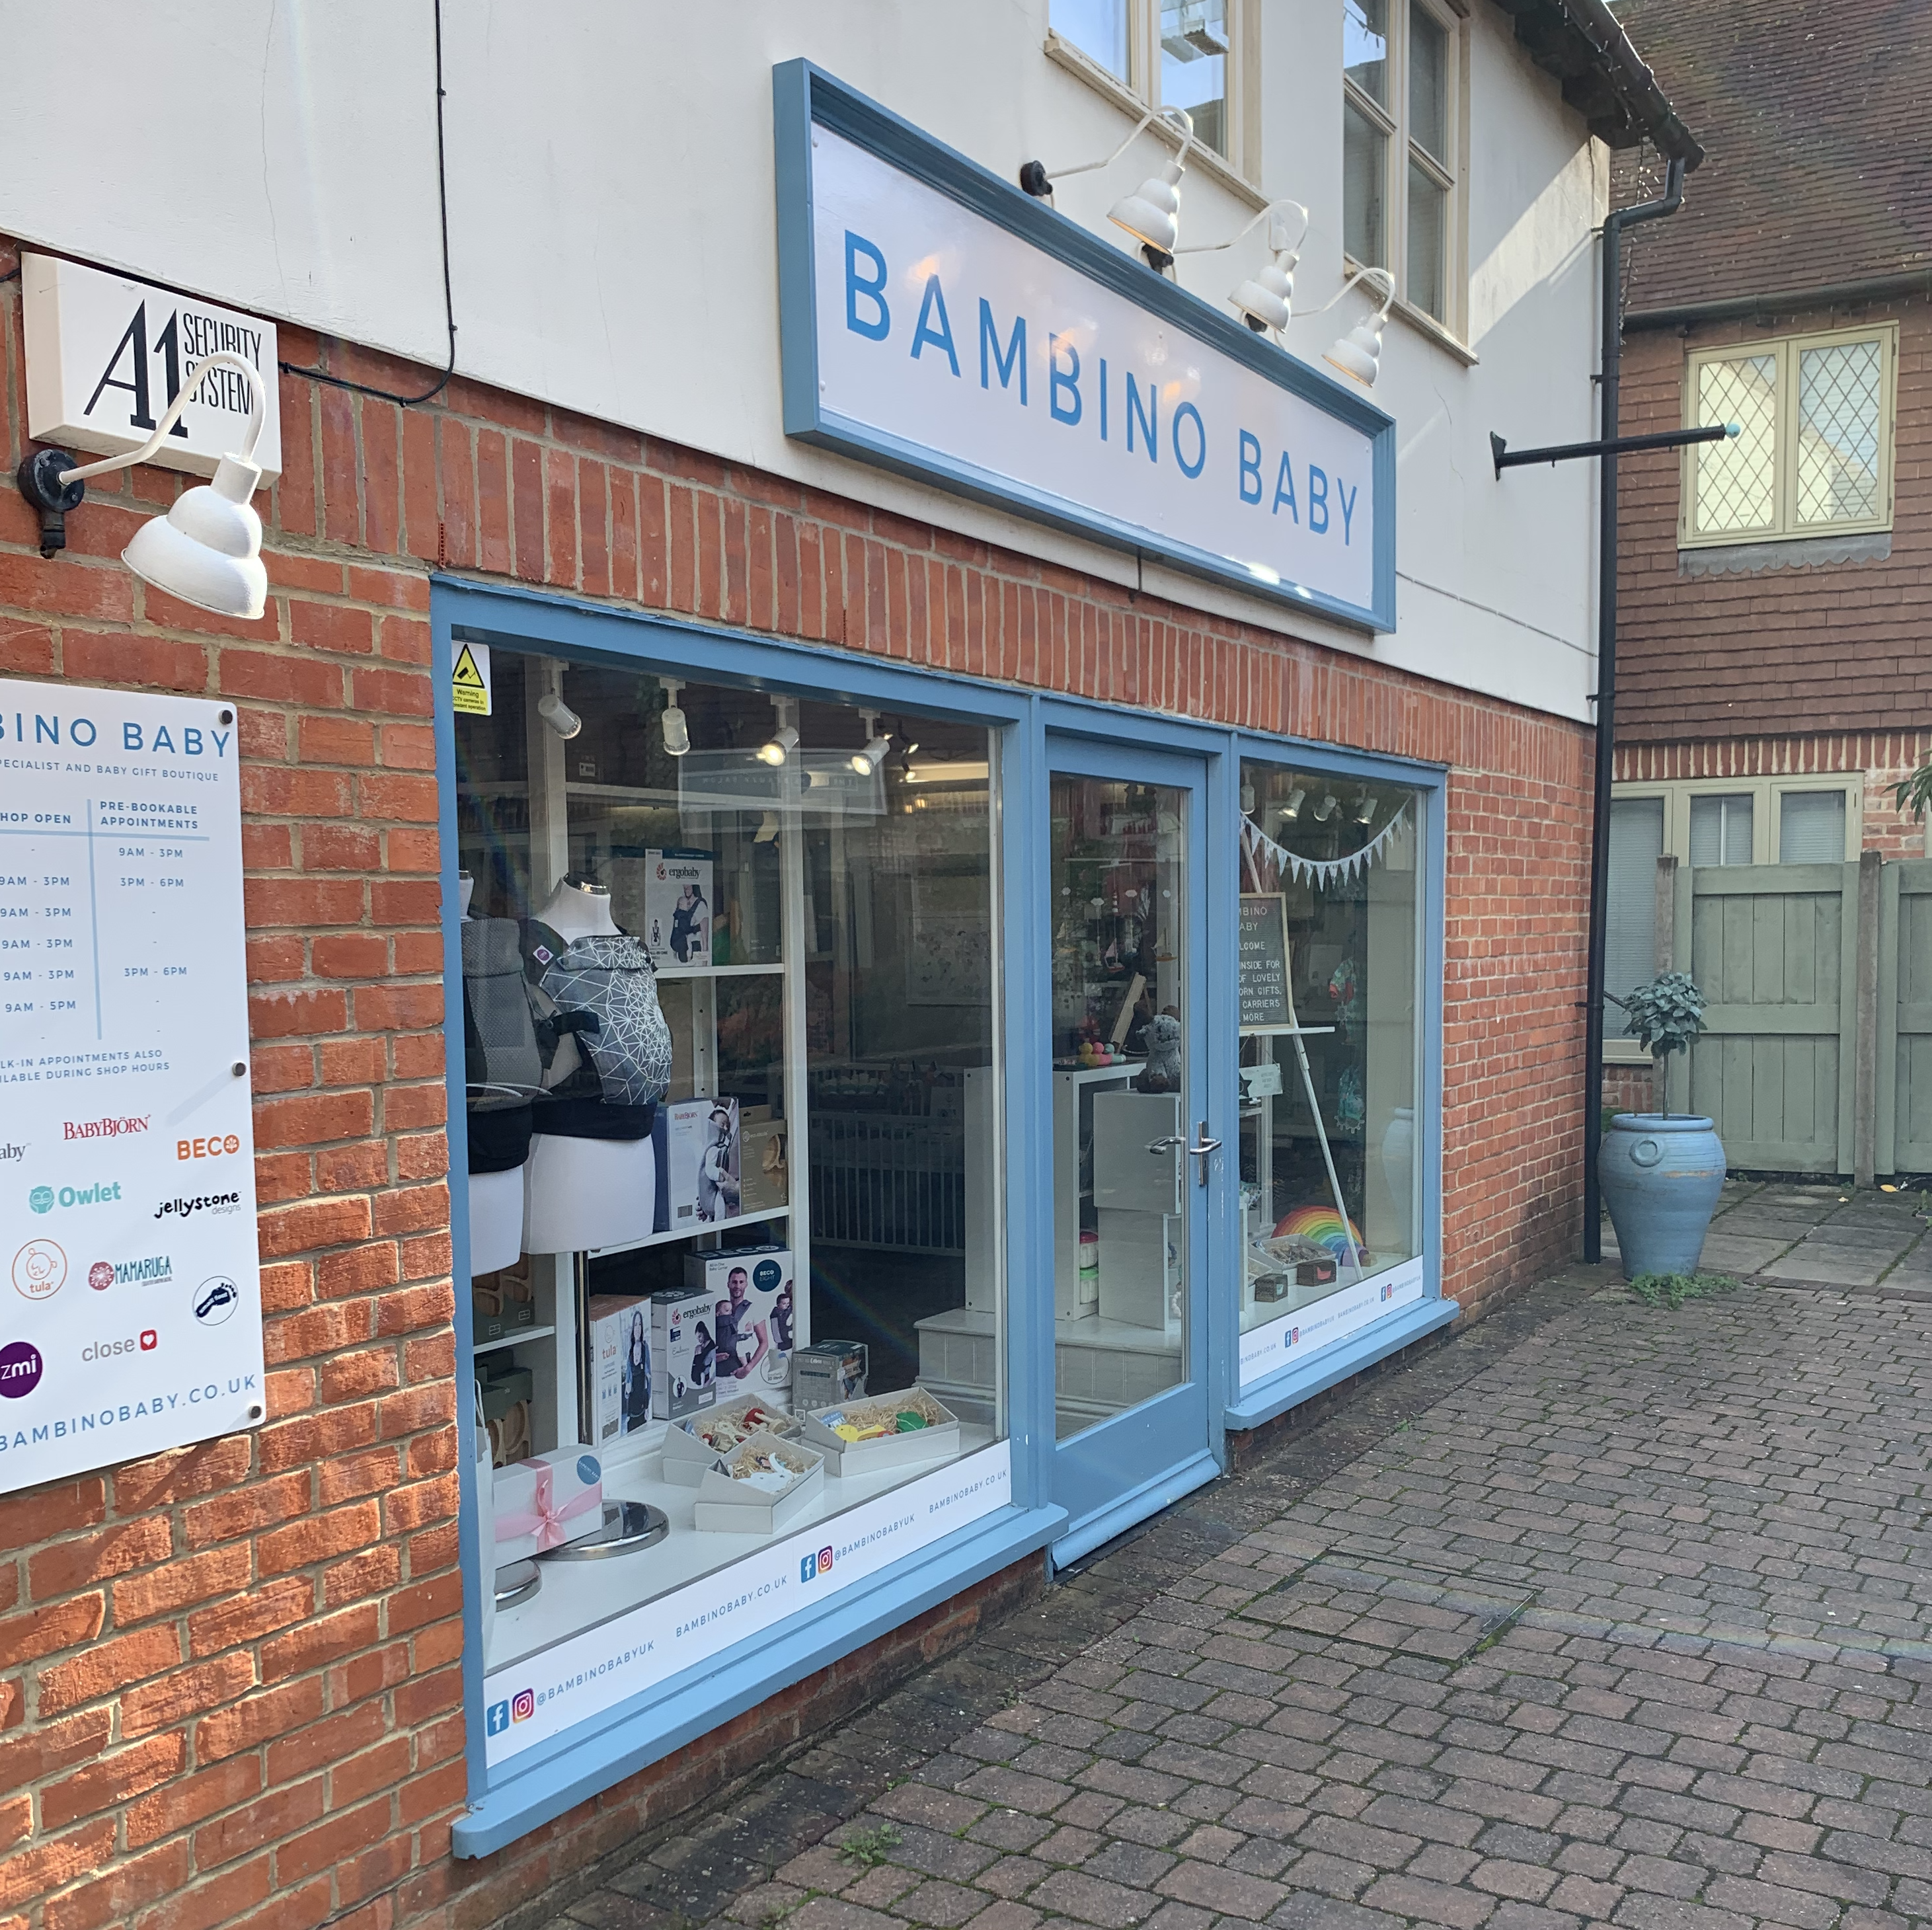 Shop front with two large glass windows, displaying baby carriers and gifts, with Bambino Baby sign above